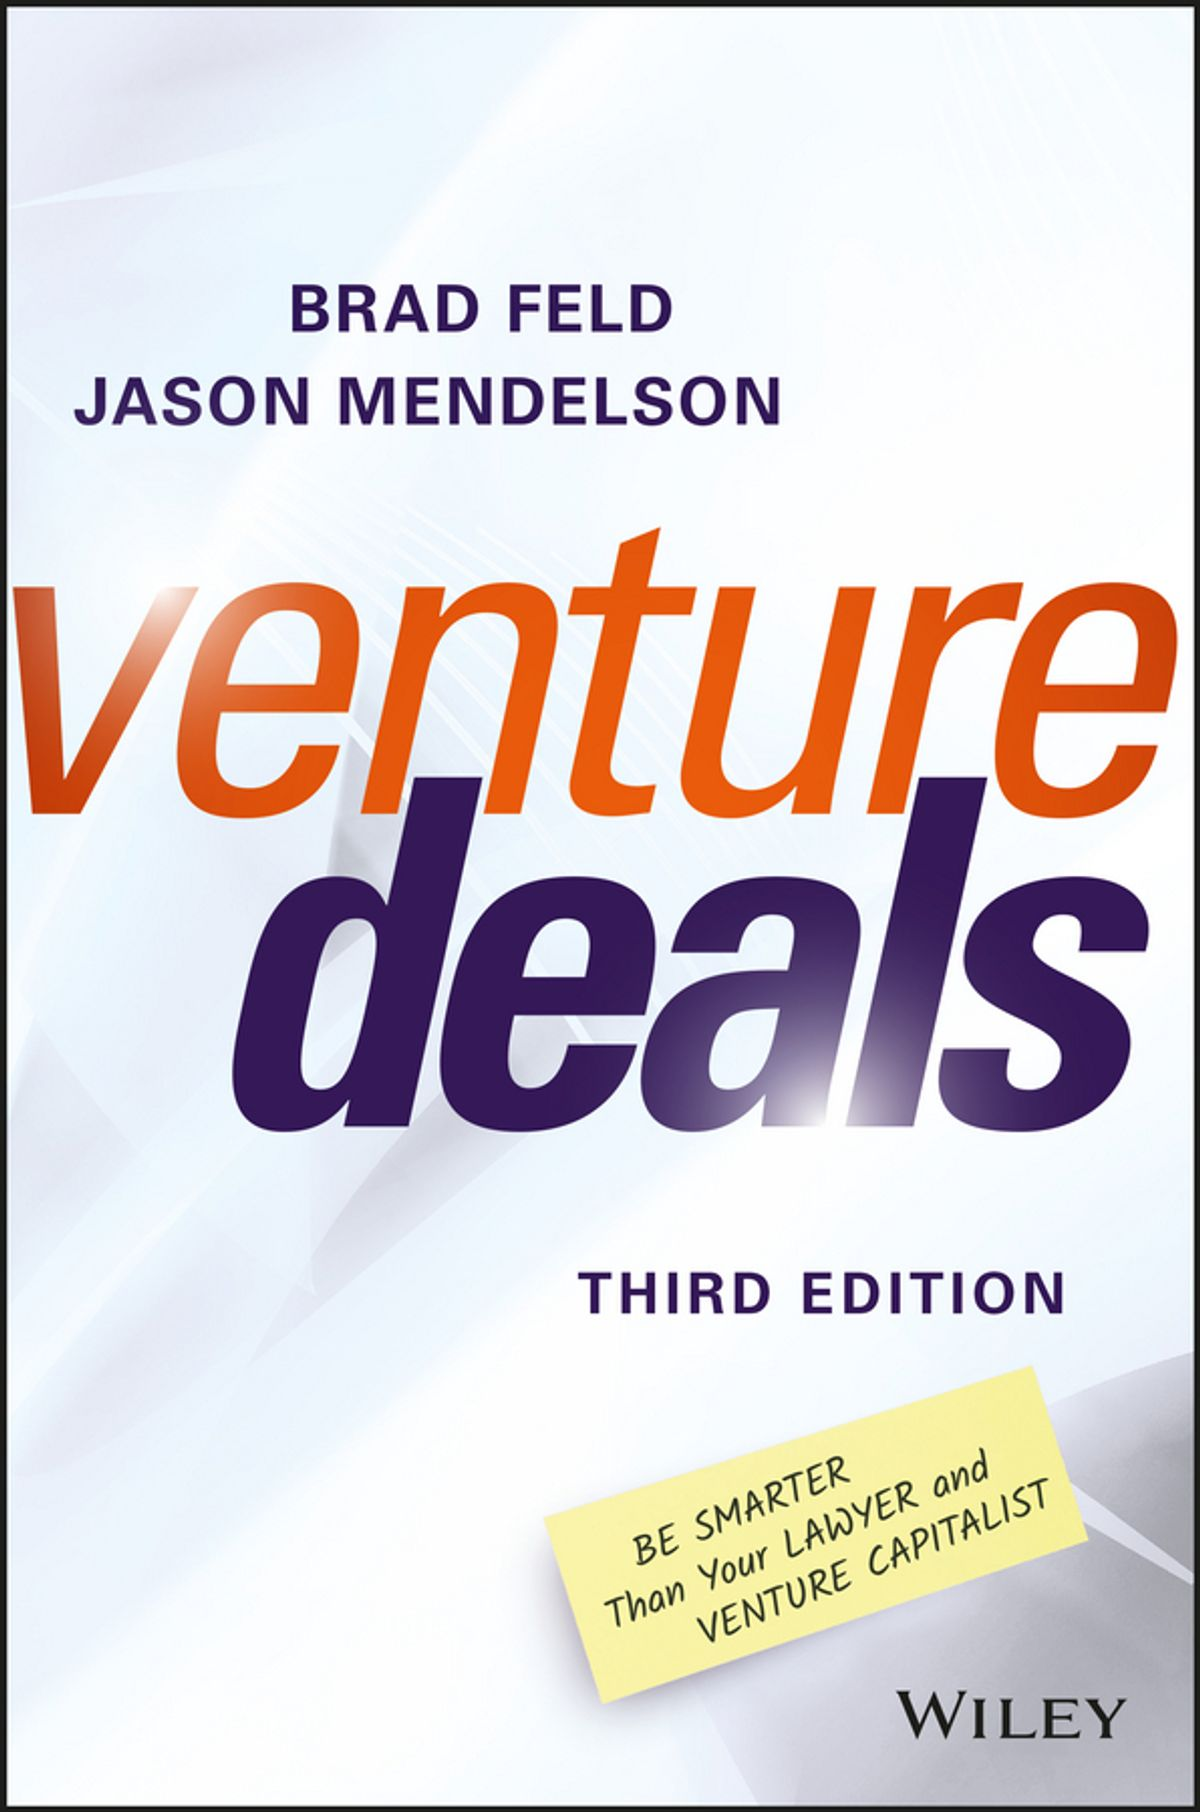 Venture Deals: Be Smarter Than Your Lawyer and Venture Capitalist - Raising venture capital is a black box for any new entrepreneur. This book by Brad Feld and Jason Mendelson walks through the key pieces of raising capital in an easy-to-understand format with great tips on how to set your company up for success.